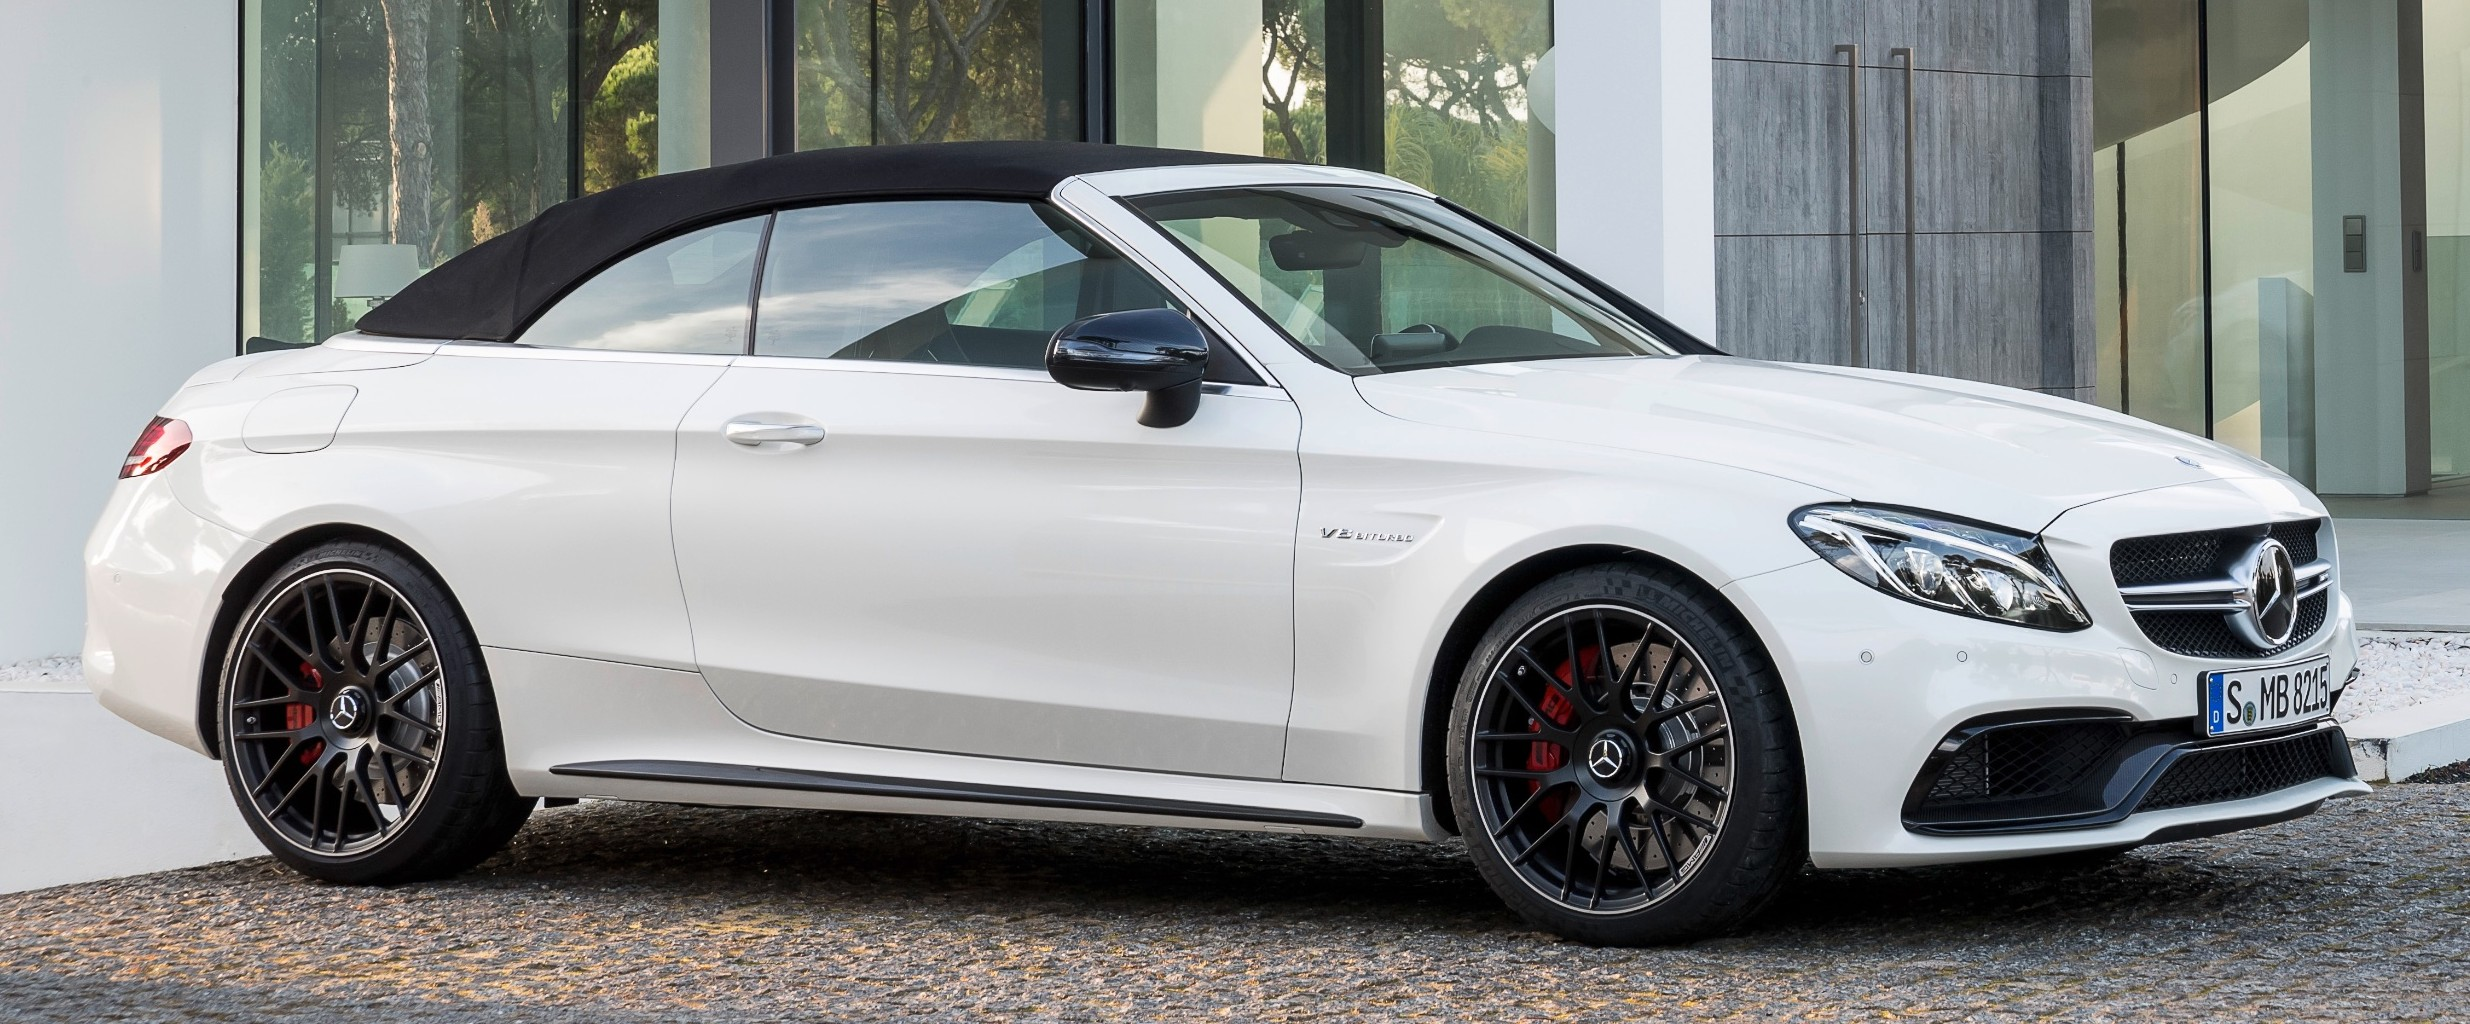 S 63 Amg 2017 >> Mercedes-AMG C63 Cabriolet gets topless in New York Image 466171